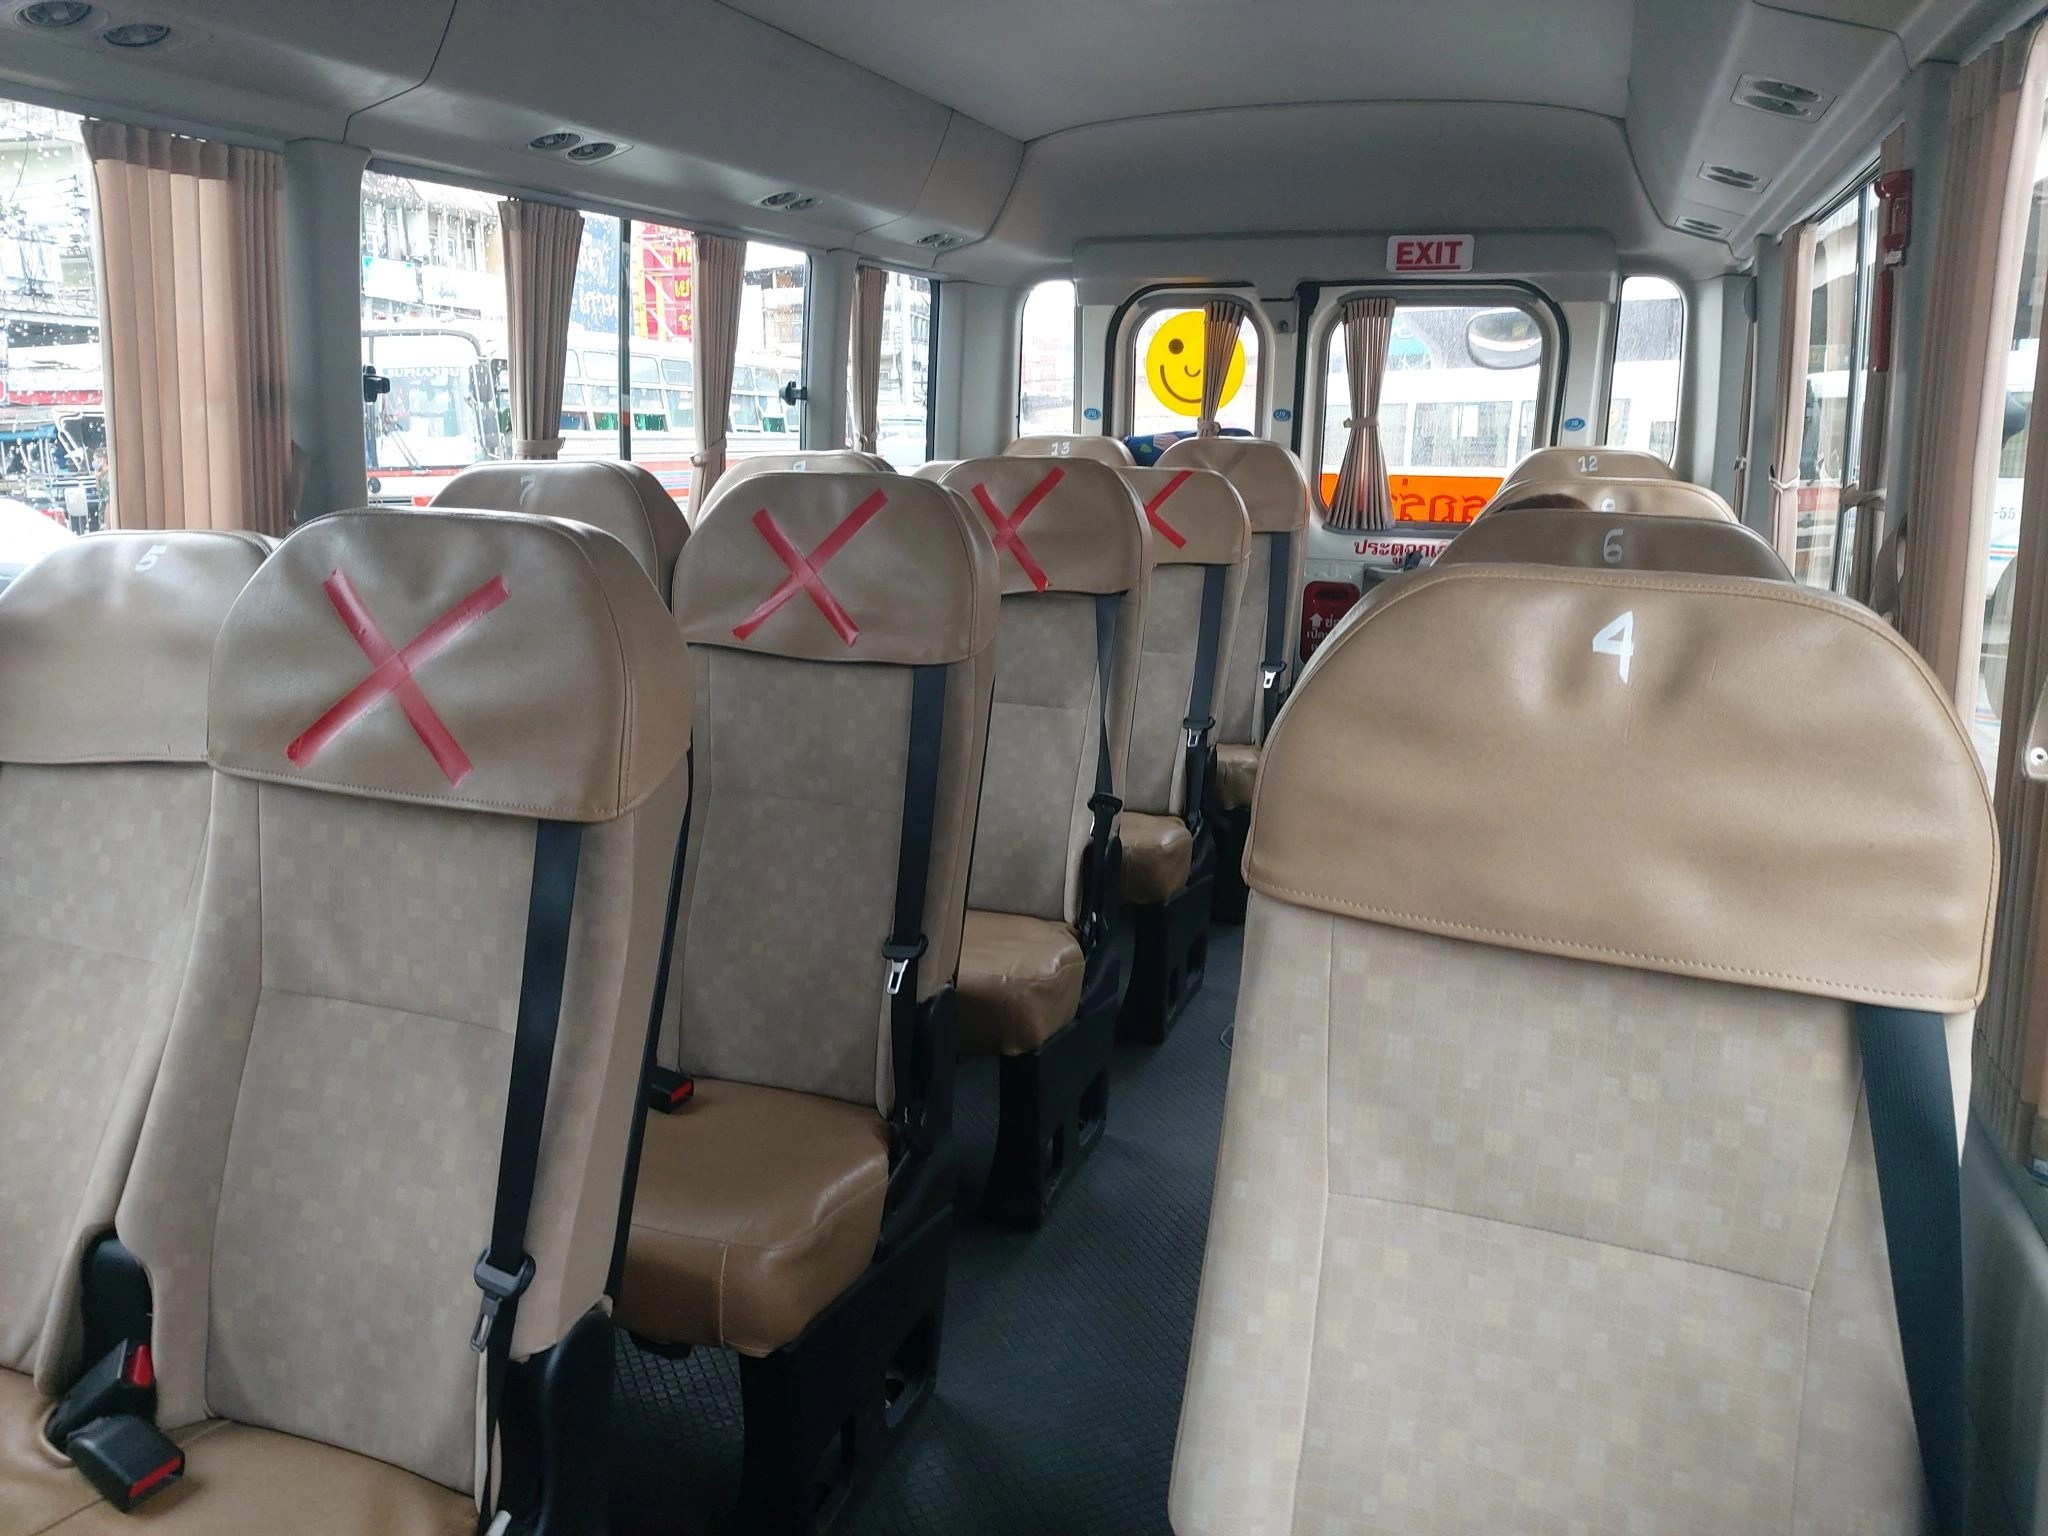 Seats with crosses on them